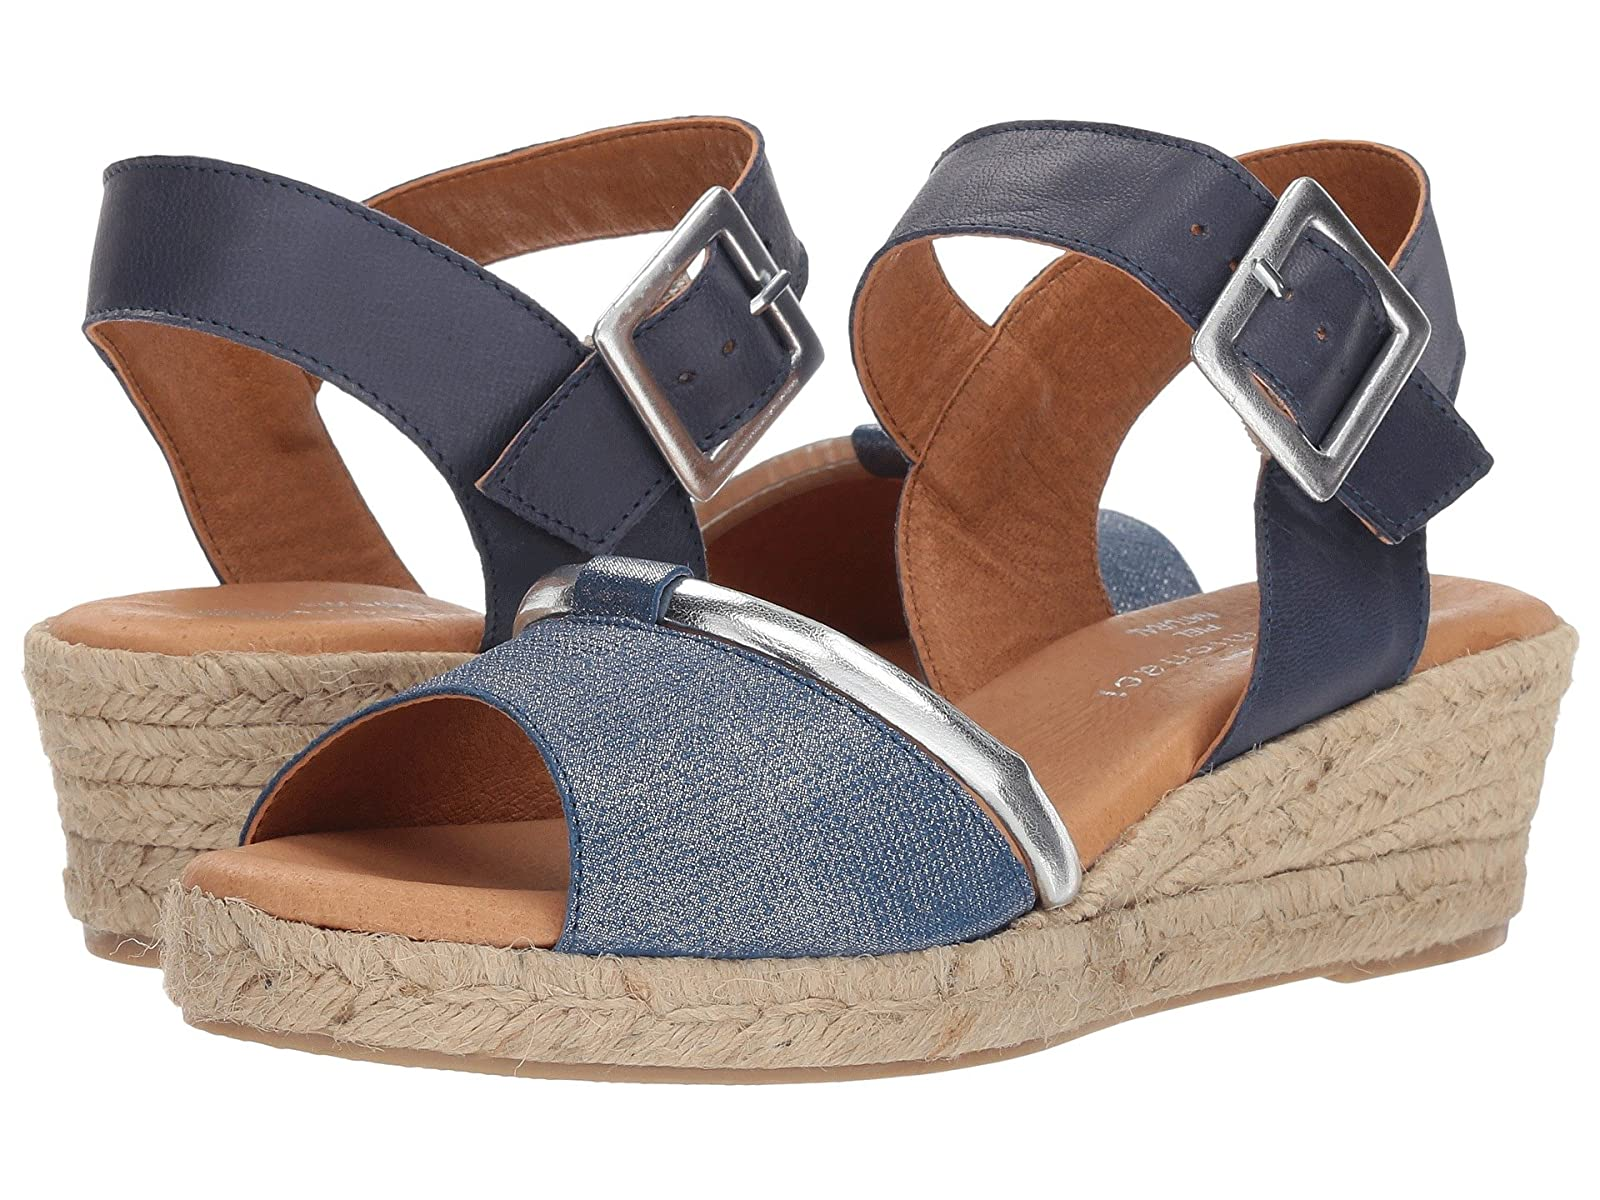 Eric Michael TinaAtmospheric grades have affordable shoes